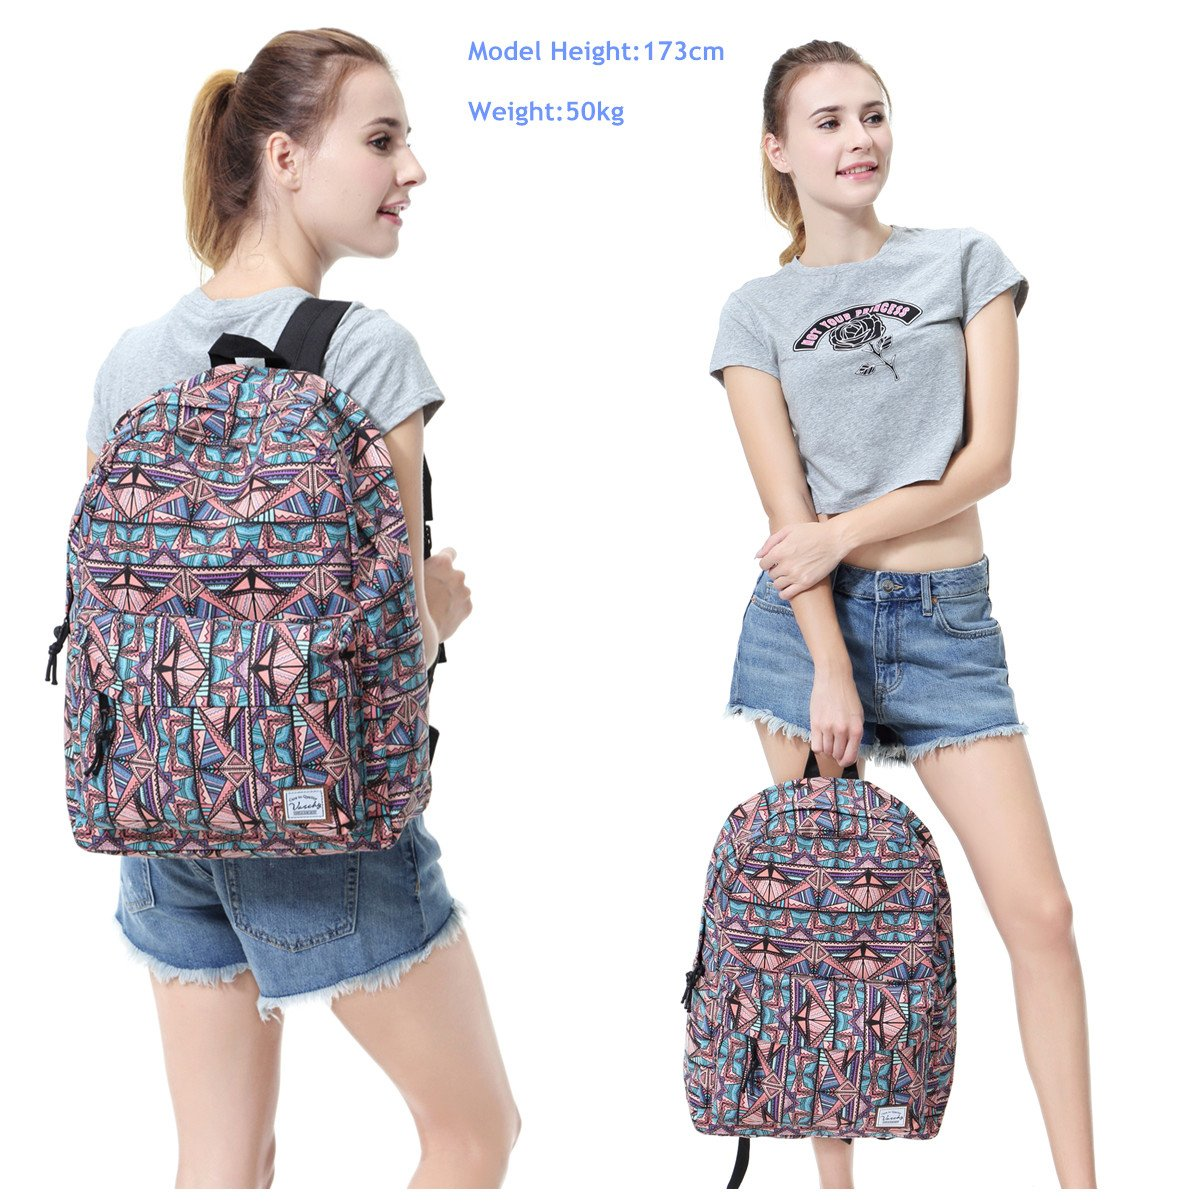 School Backpack for Teen Girls,Fashion Canvas Rucksack BookBag with Padded Laptop Sleeve by Vaschy (Image #7)